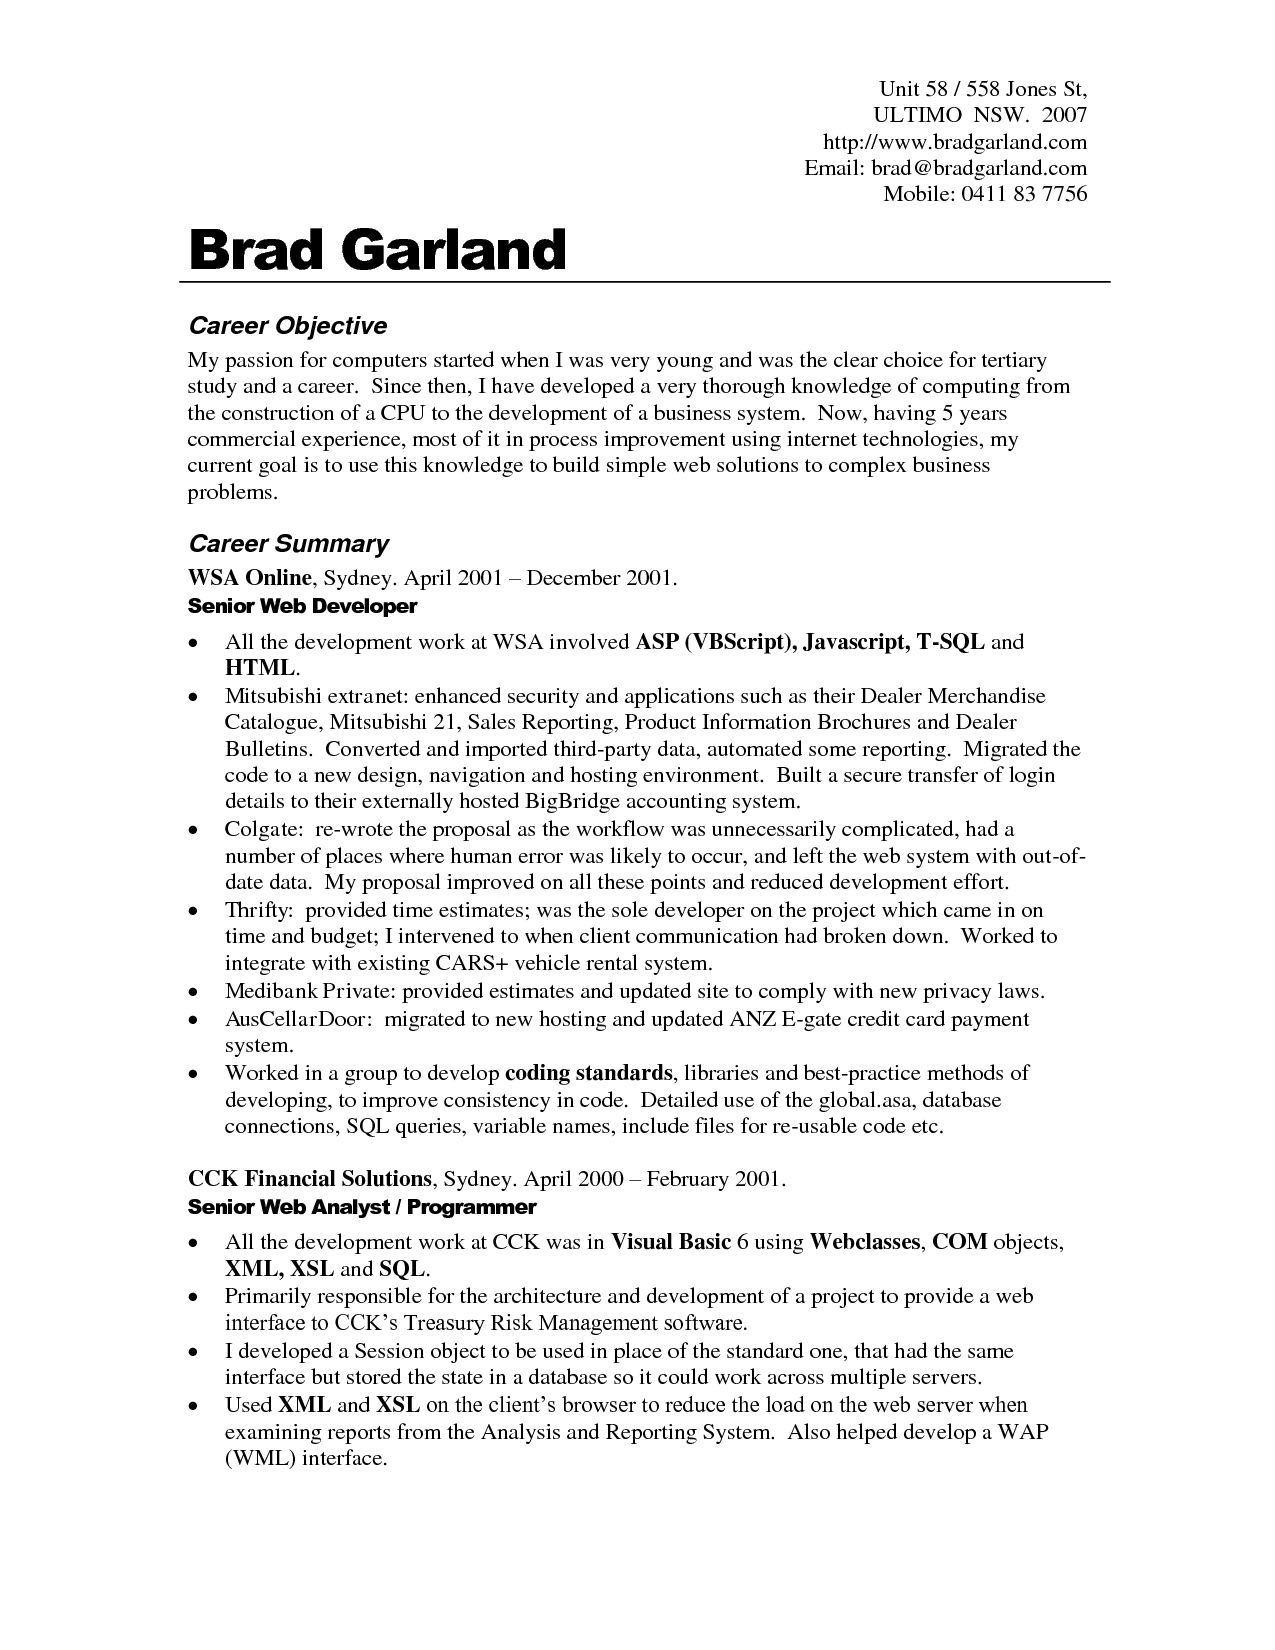 Resume Examples Objectives Sample Resume Action Verbs For Lawyers Formatting Back Post